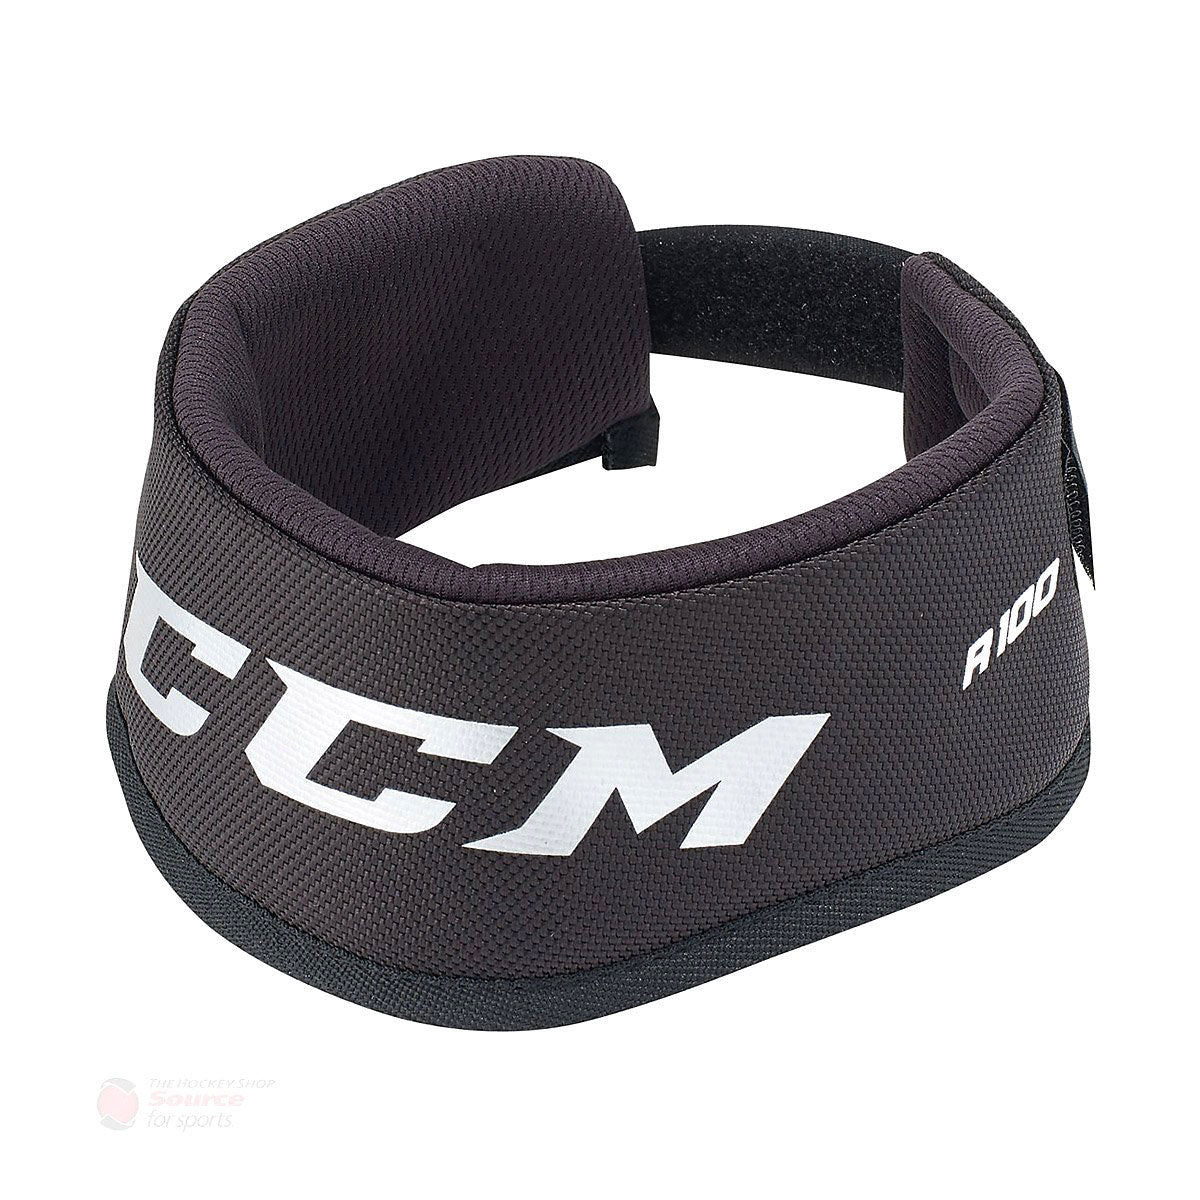 CCM RBZ 100 Youth Neck Guard